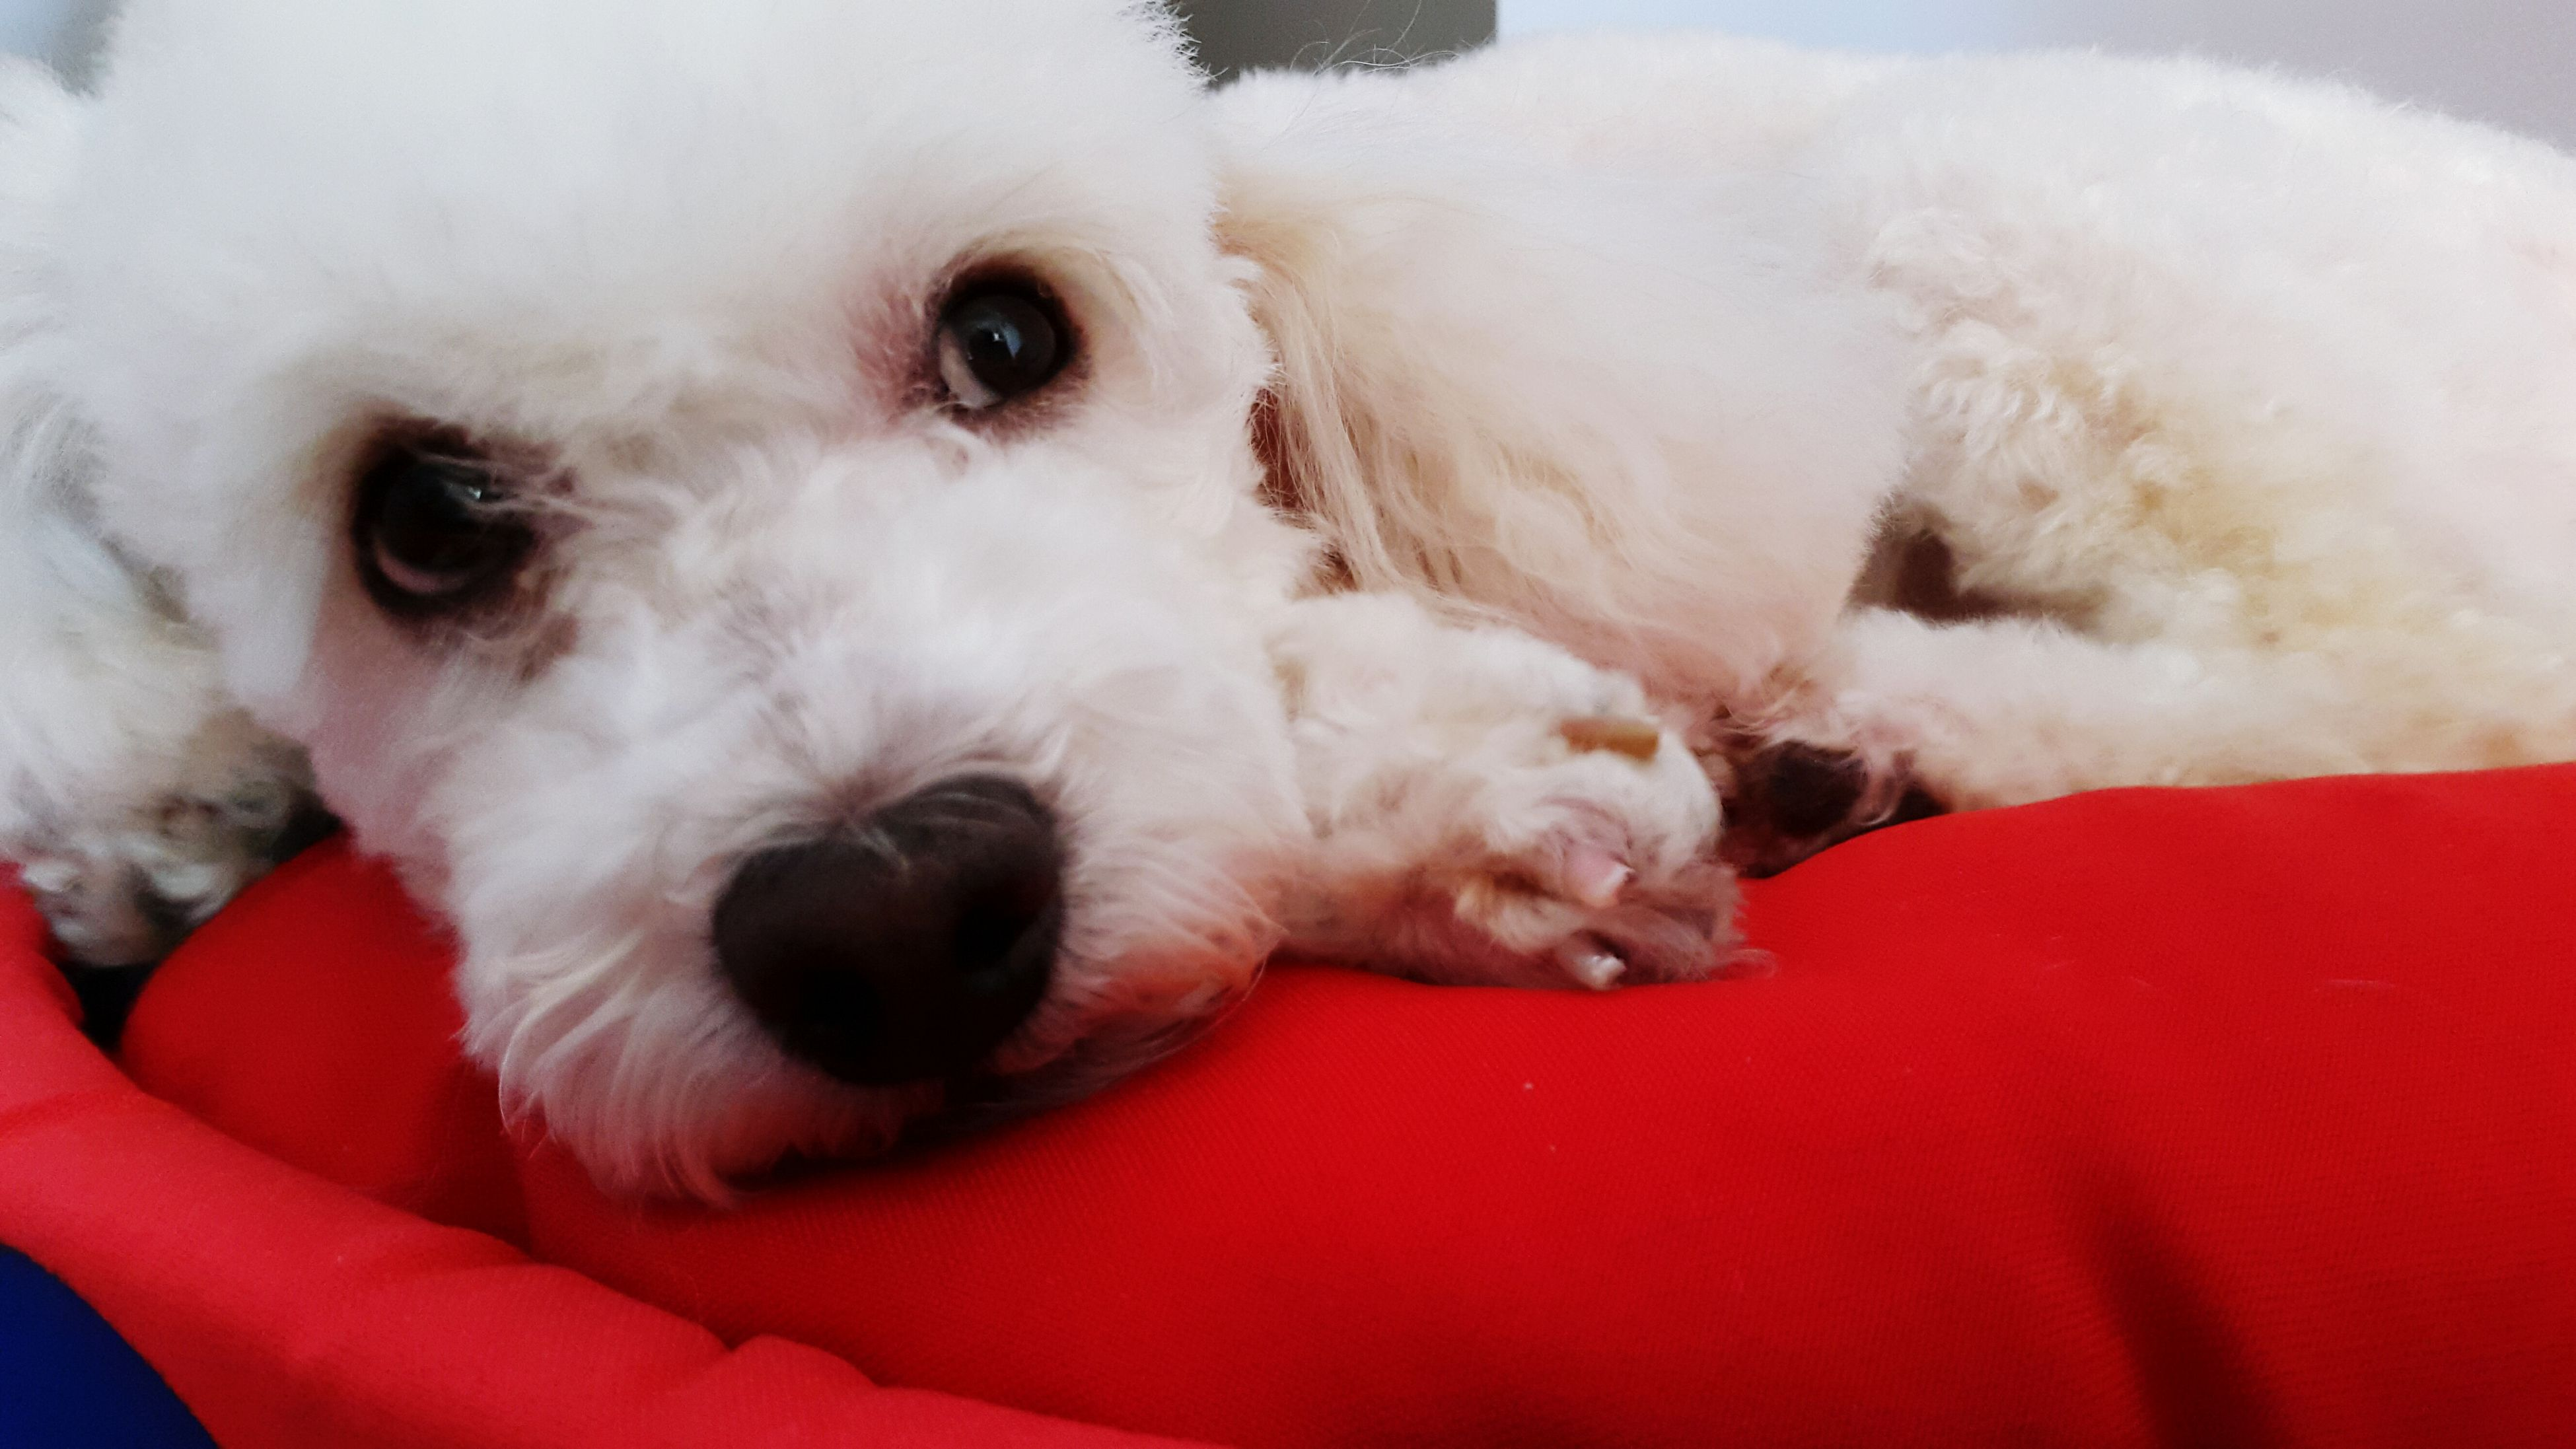 pets, domestic animals, animal themes, dog, one animal, mammal, indoors, portrait, looking at camera, relaxation, close-up, animal head, white color, lying down, cute, red, resting, bed, sofa, home interior